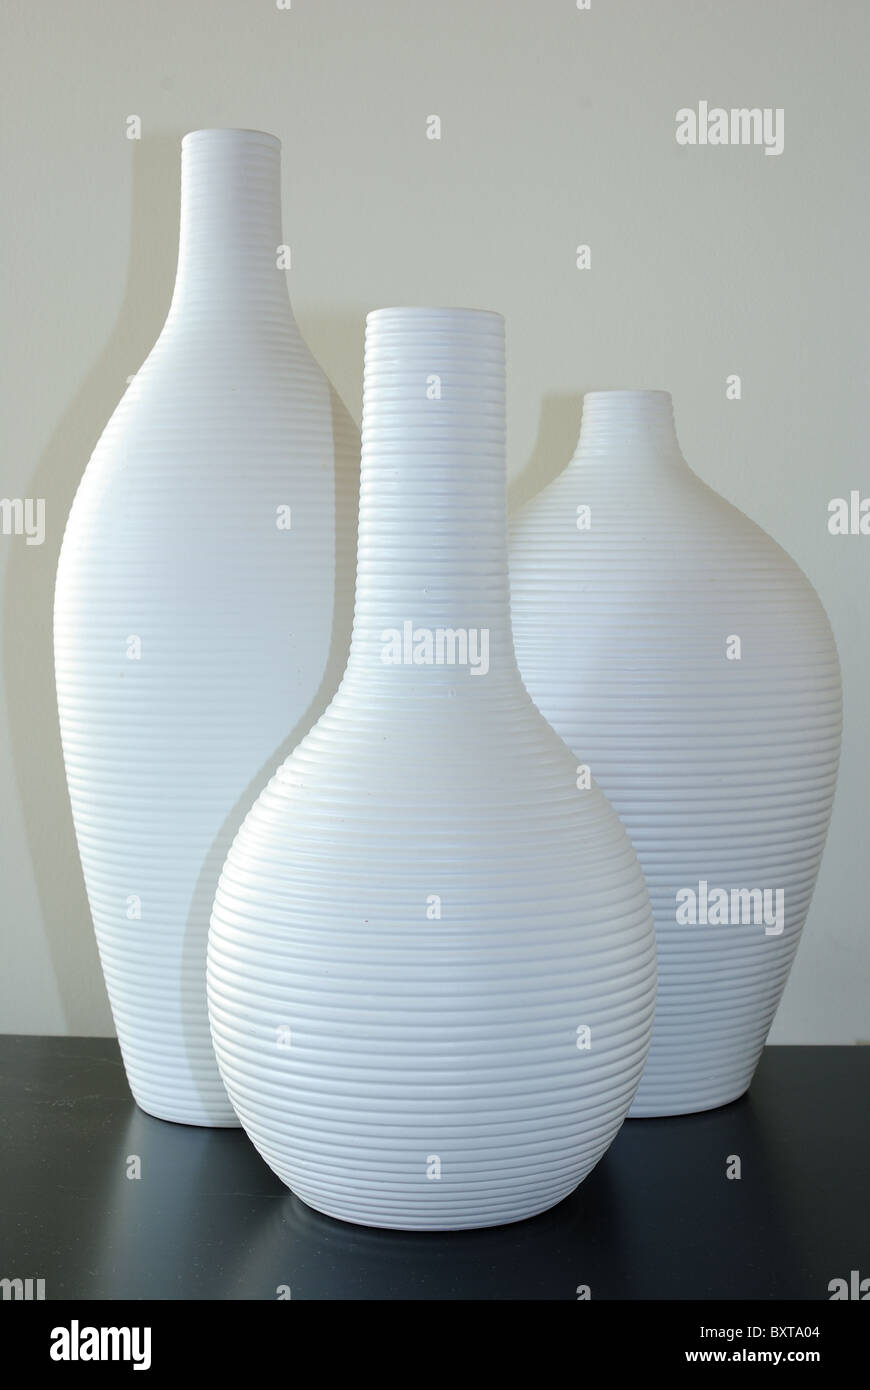 White Vases on a black countertop - Stock Image